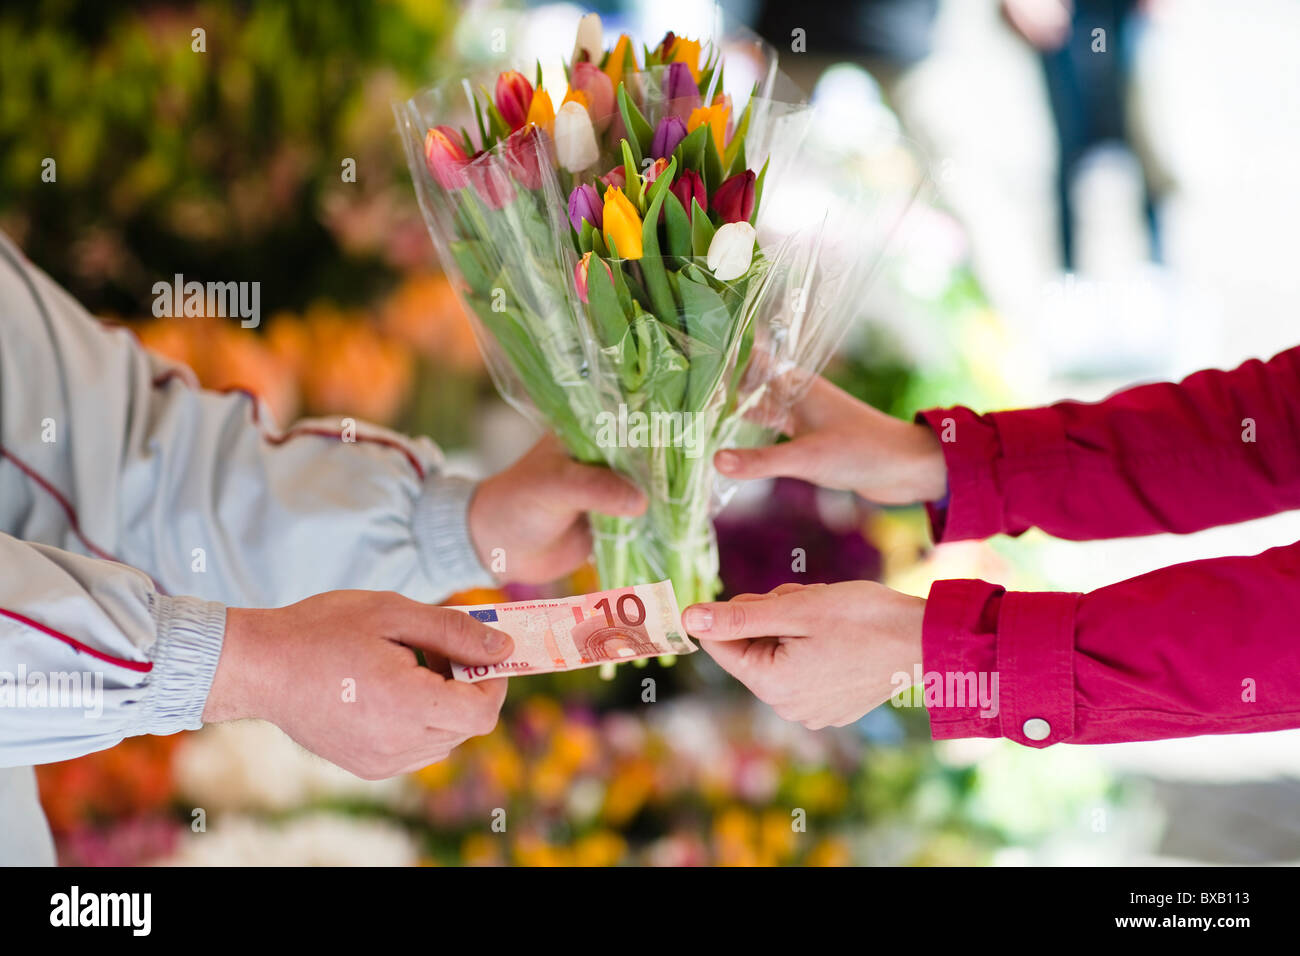 Person buying bunch of flowers from vendor Stock Photo